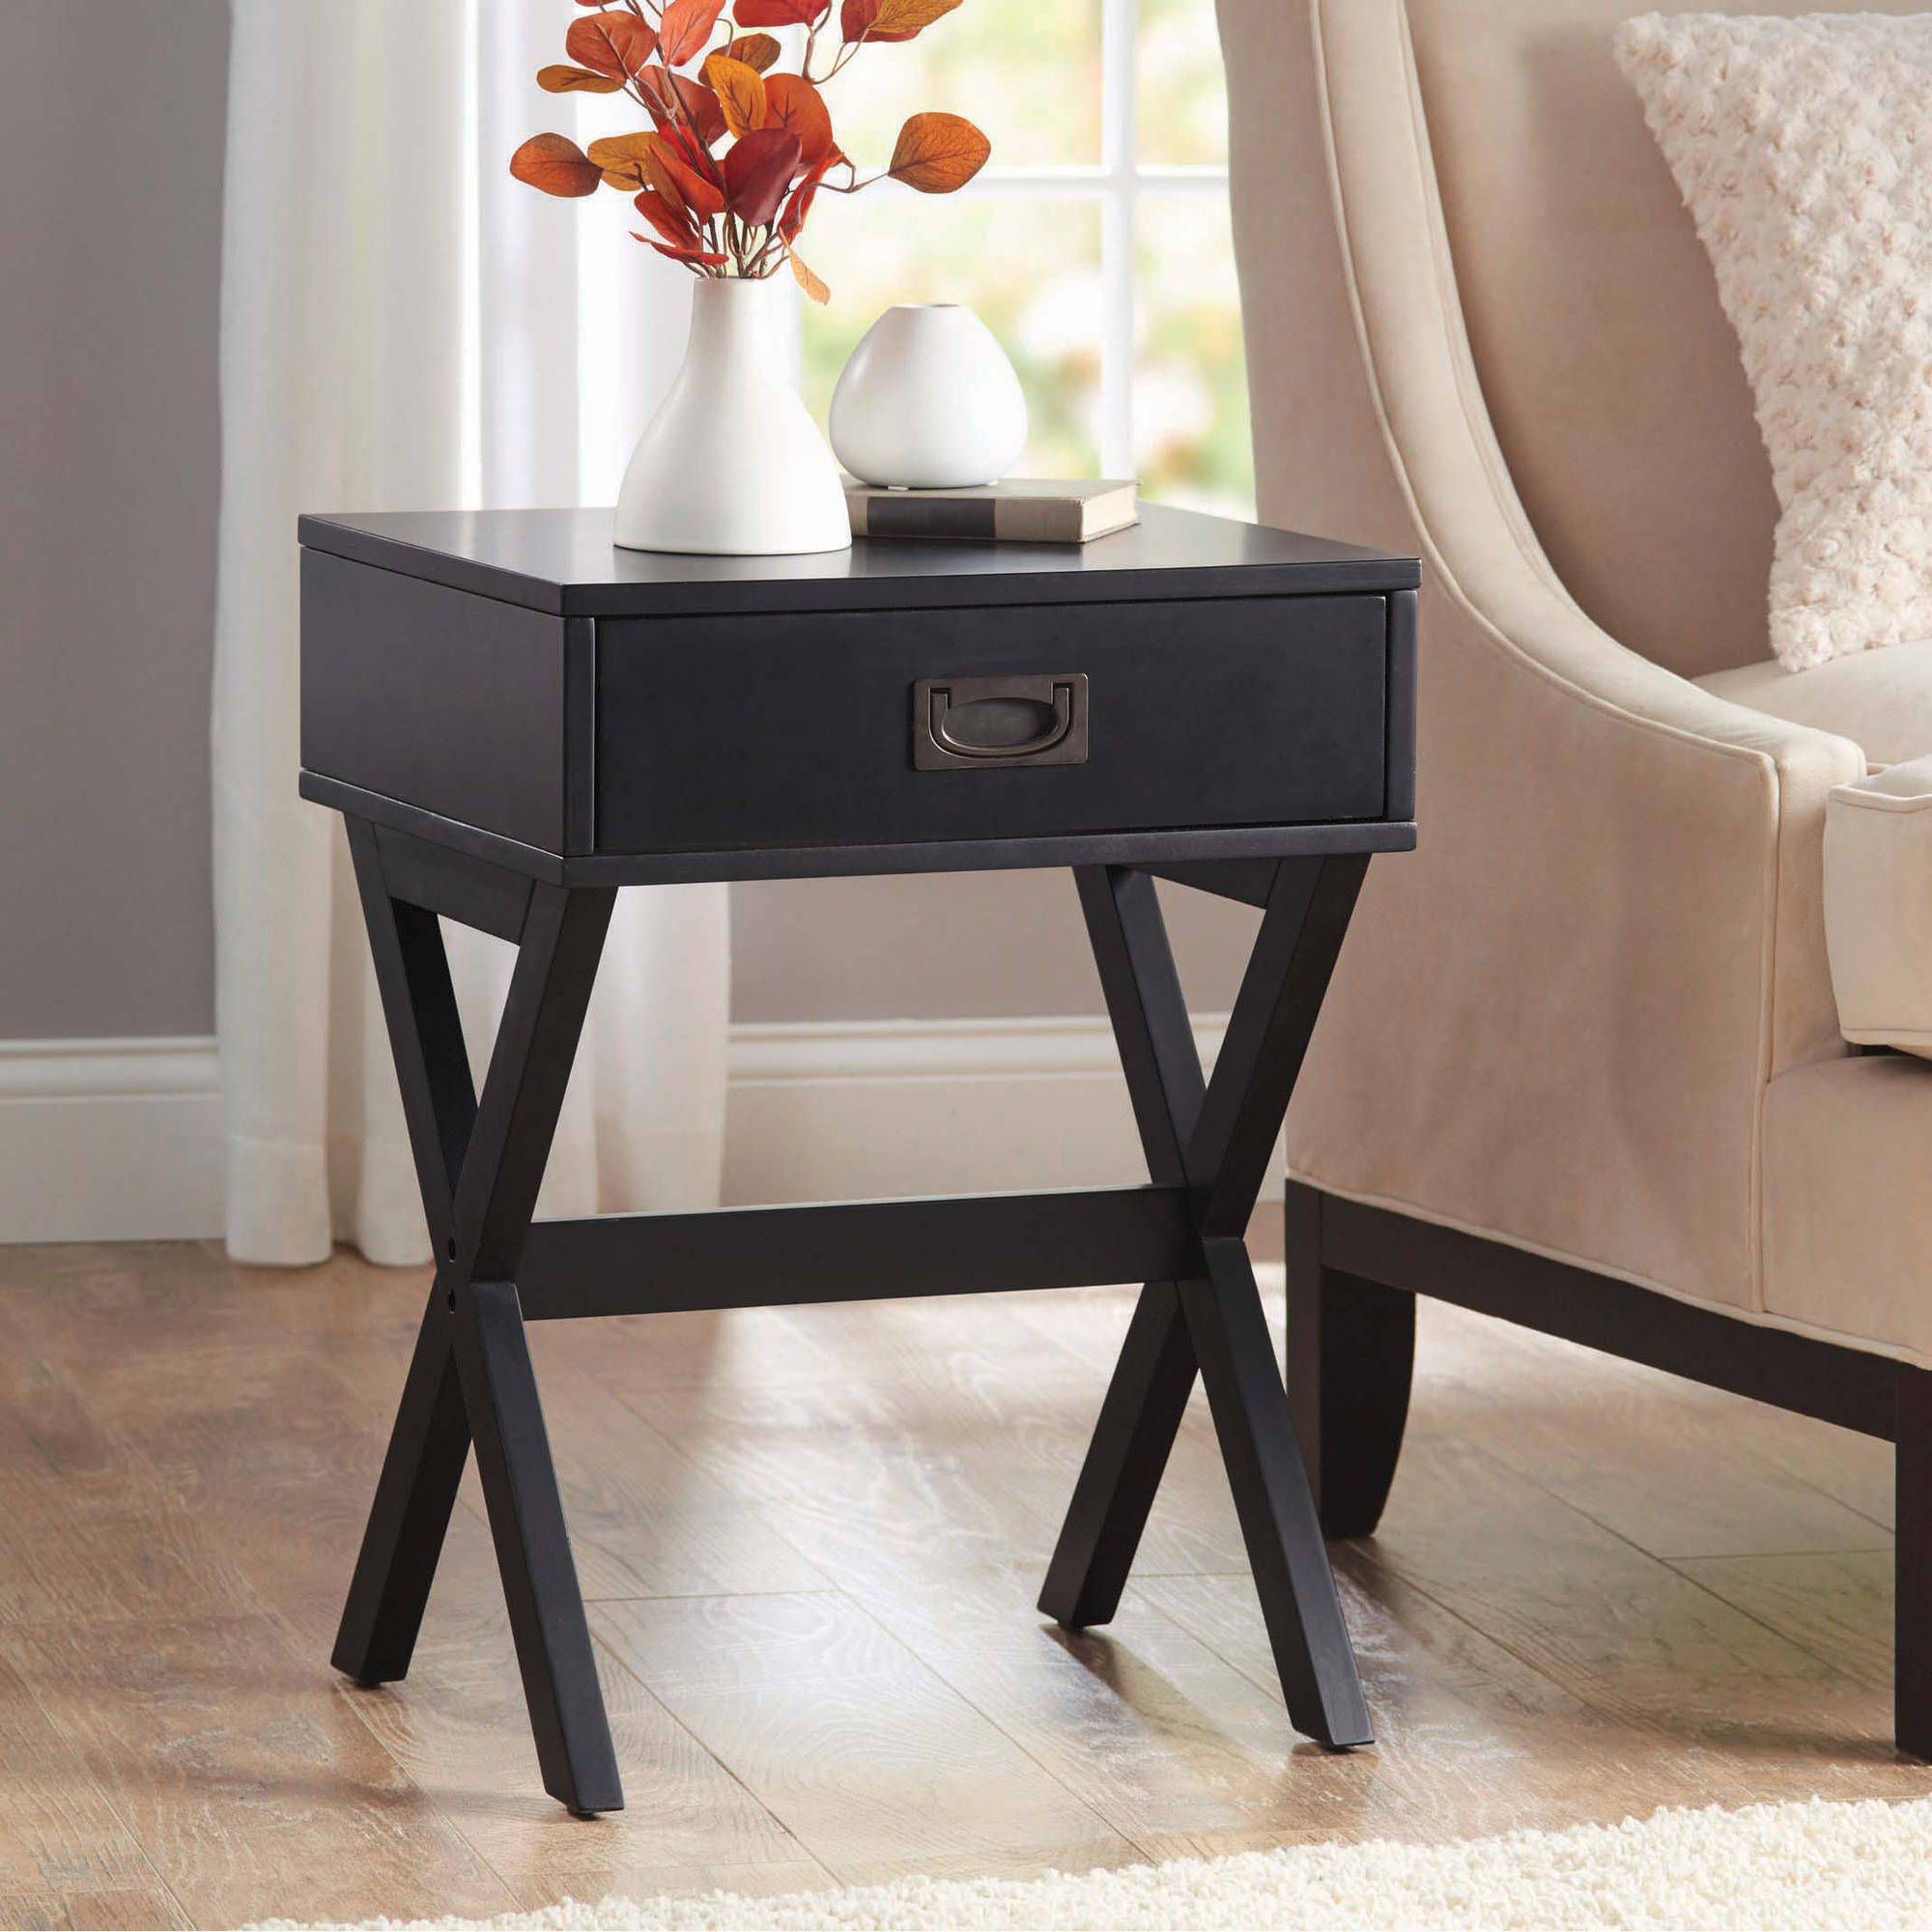 better homes gardens leg accent table with drawer multiple modern wood colors shadow box coffee vintage tier side extra large asian style lamps round pine end bath and beyond bar